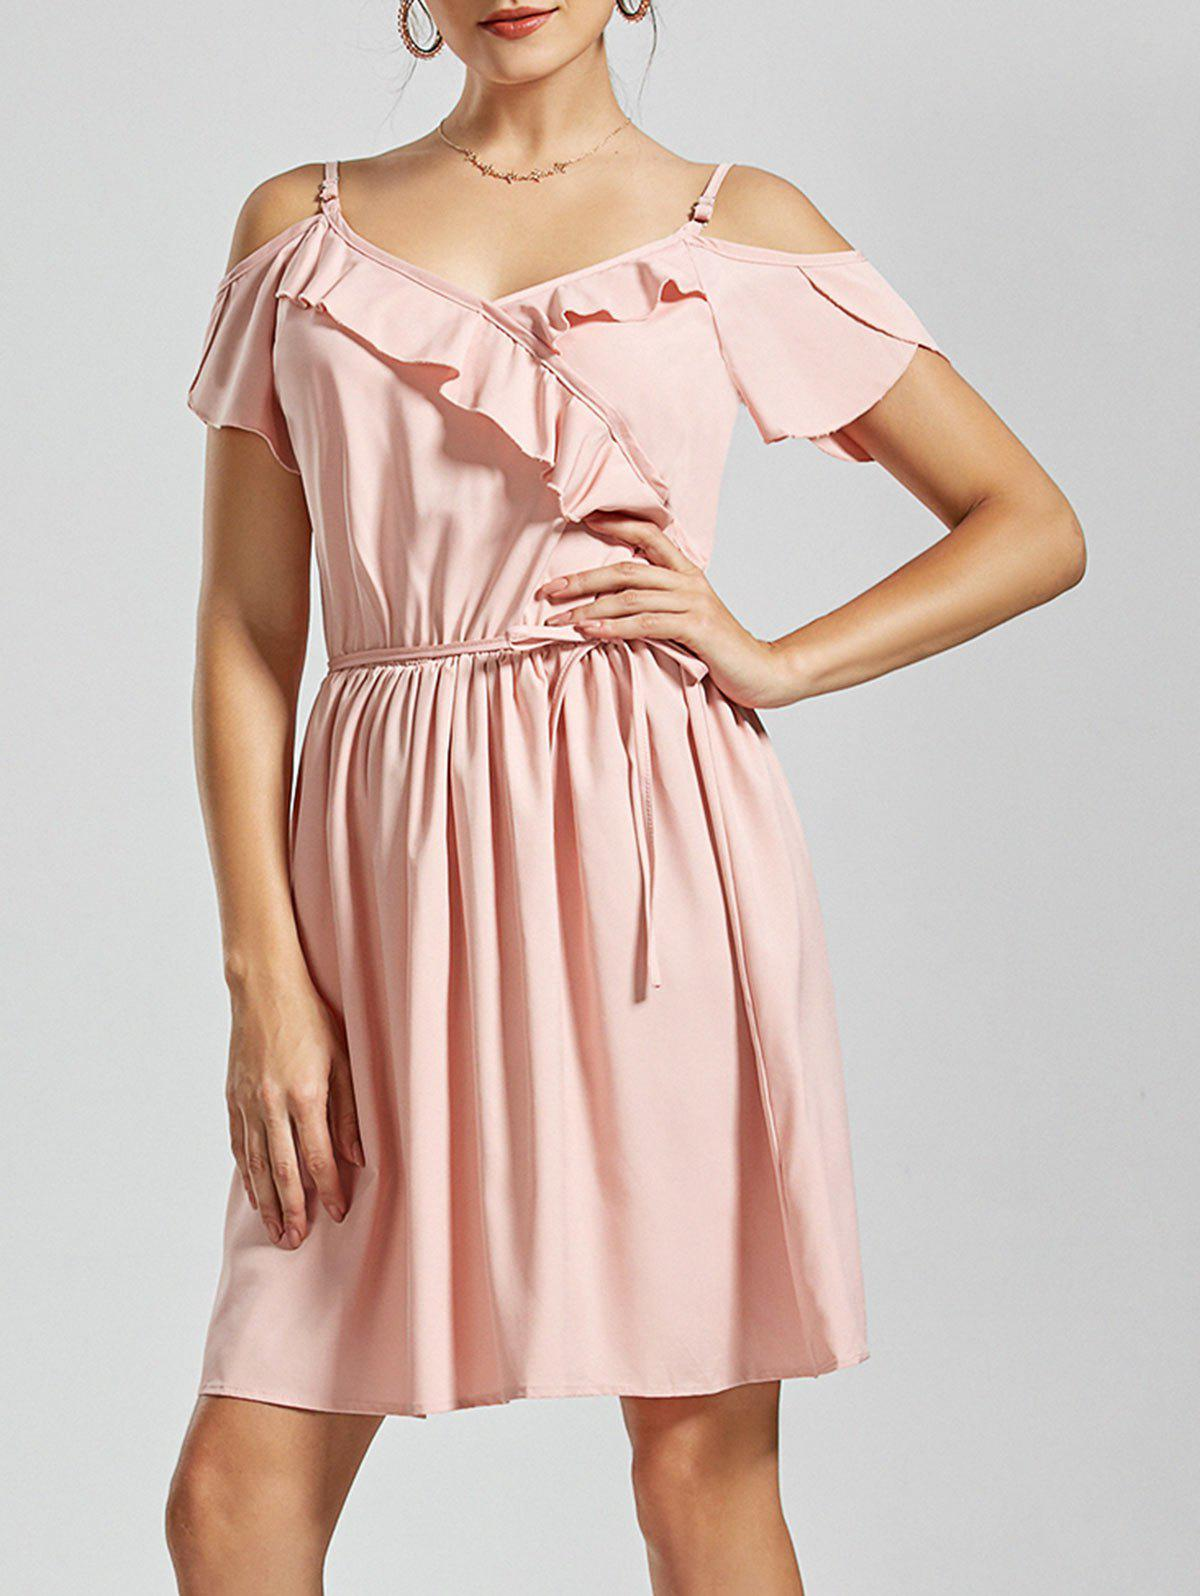 Flounce Spaghetti Straps Dress - ROSE PÂLE L